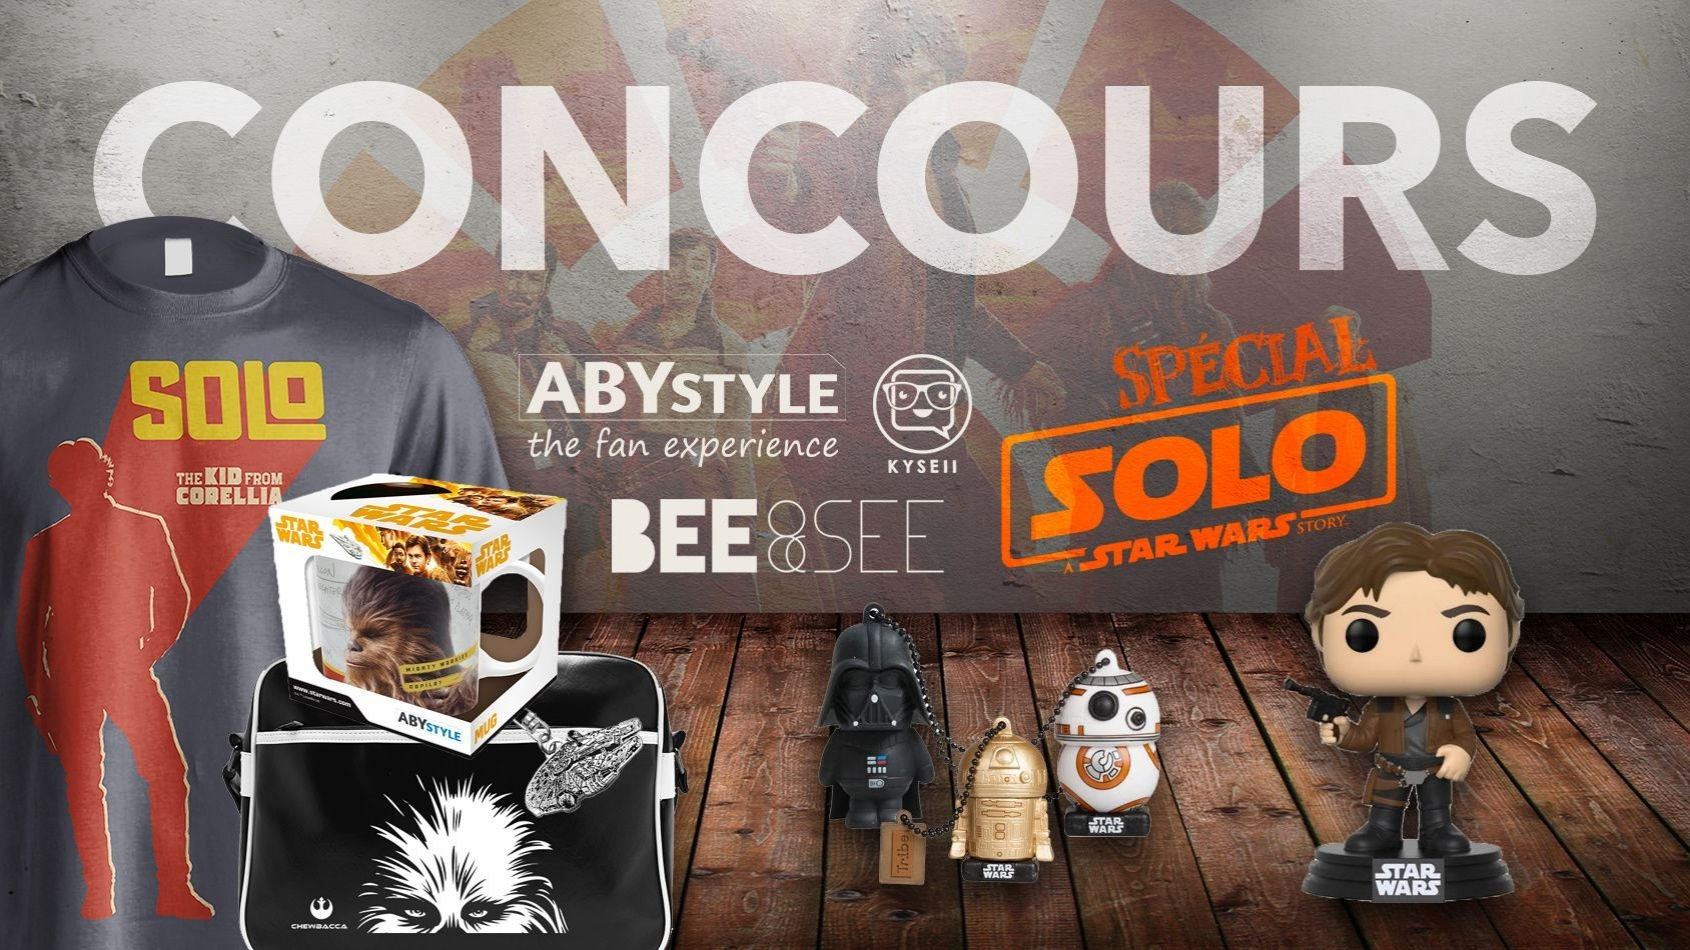 Concours Spécial Star Wars SOLO avec ABYstyle, Bee And See et Kyseii